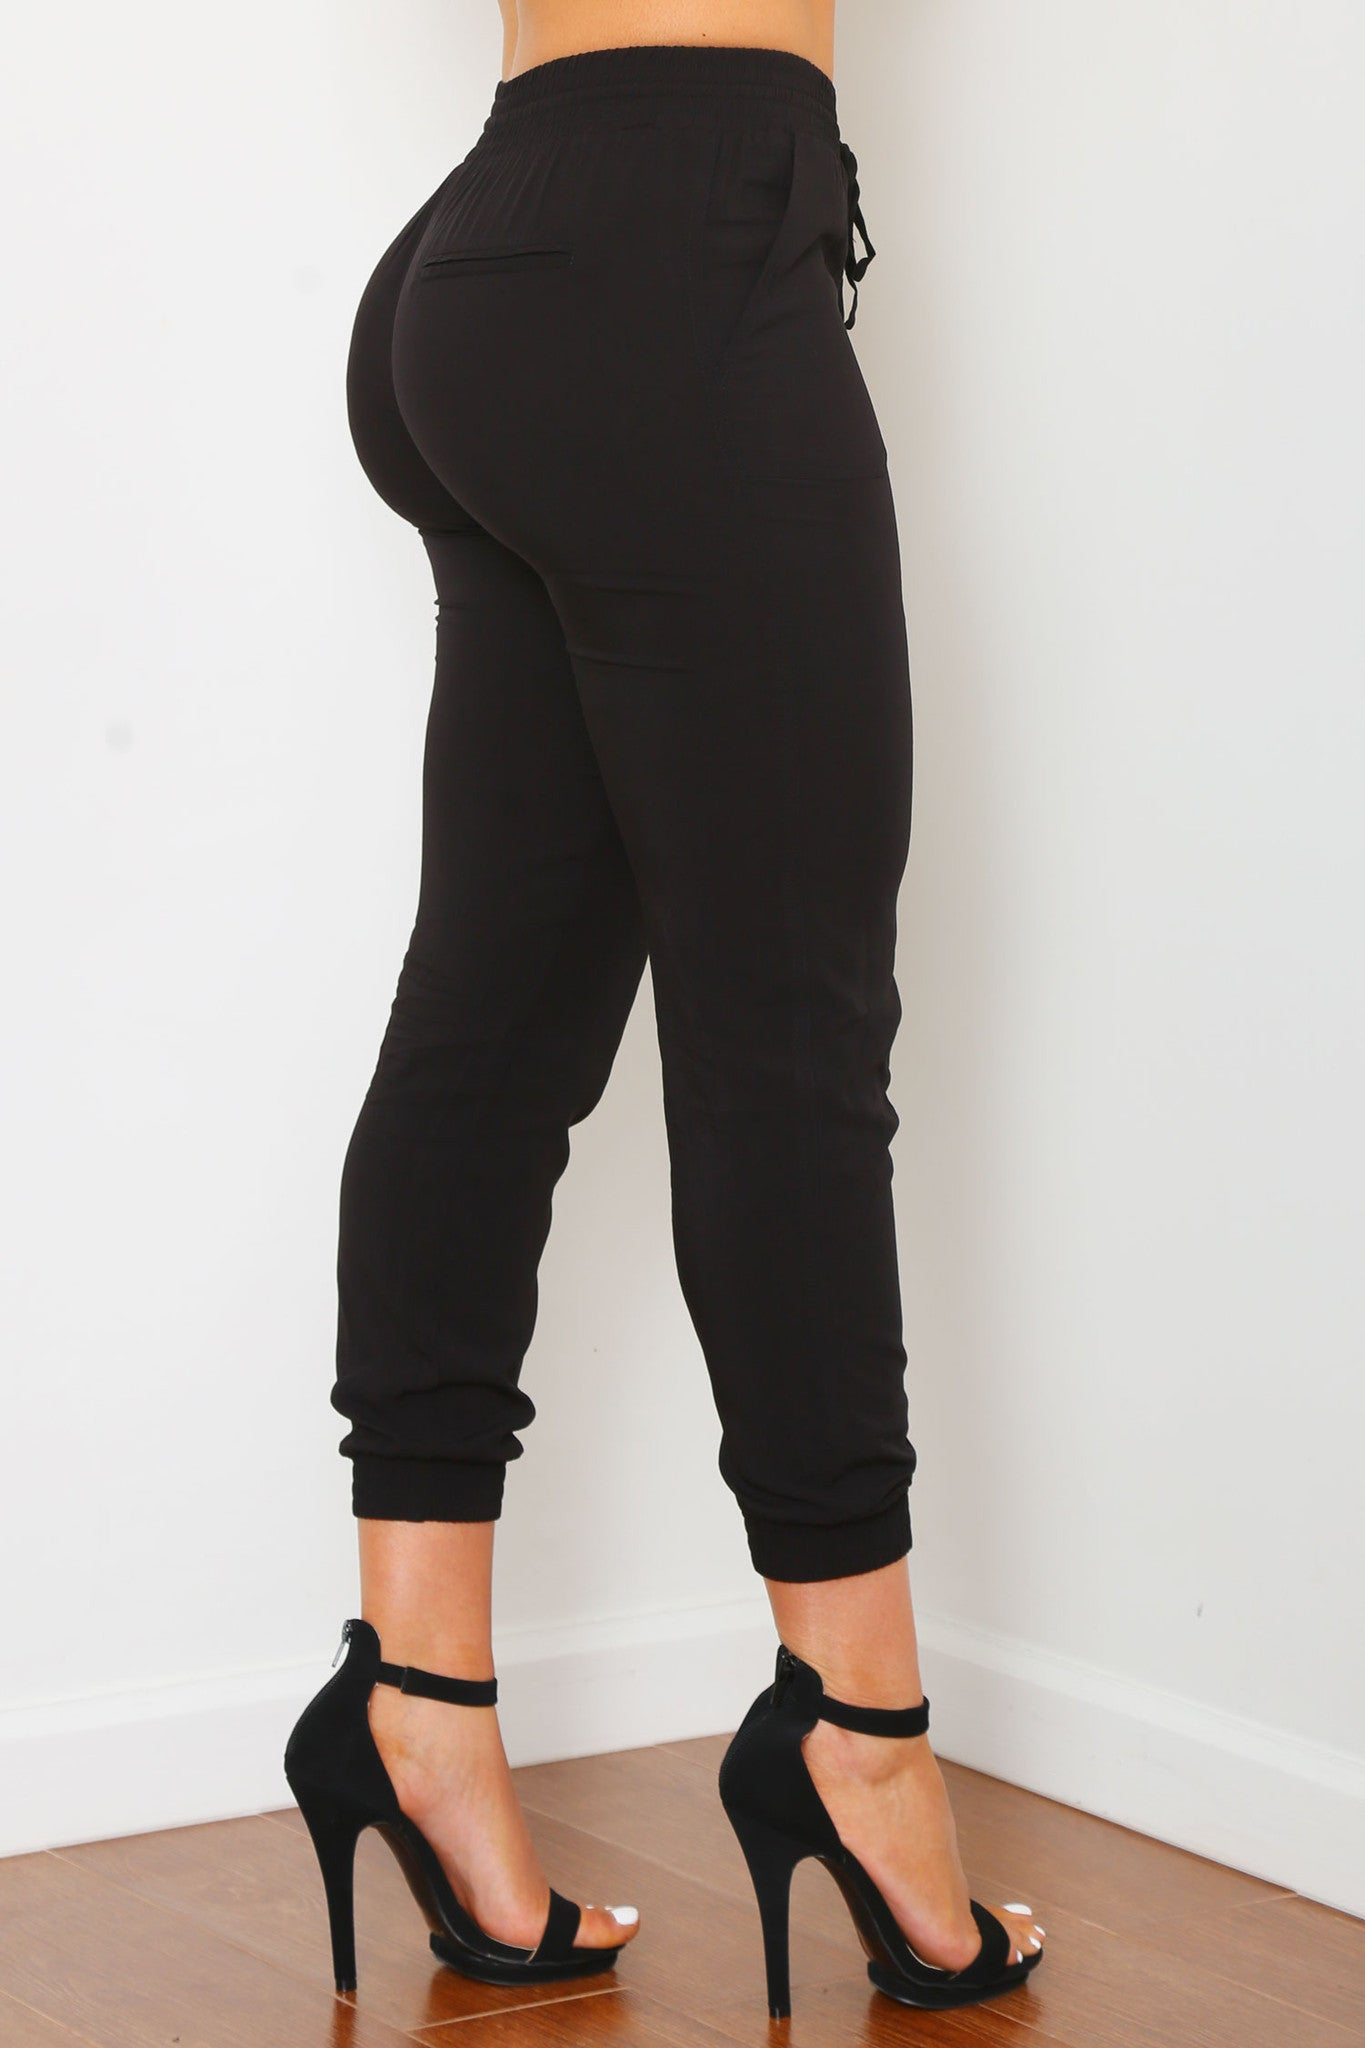 CANDY JOGGERS - Glam Envy - 2